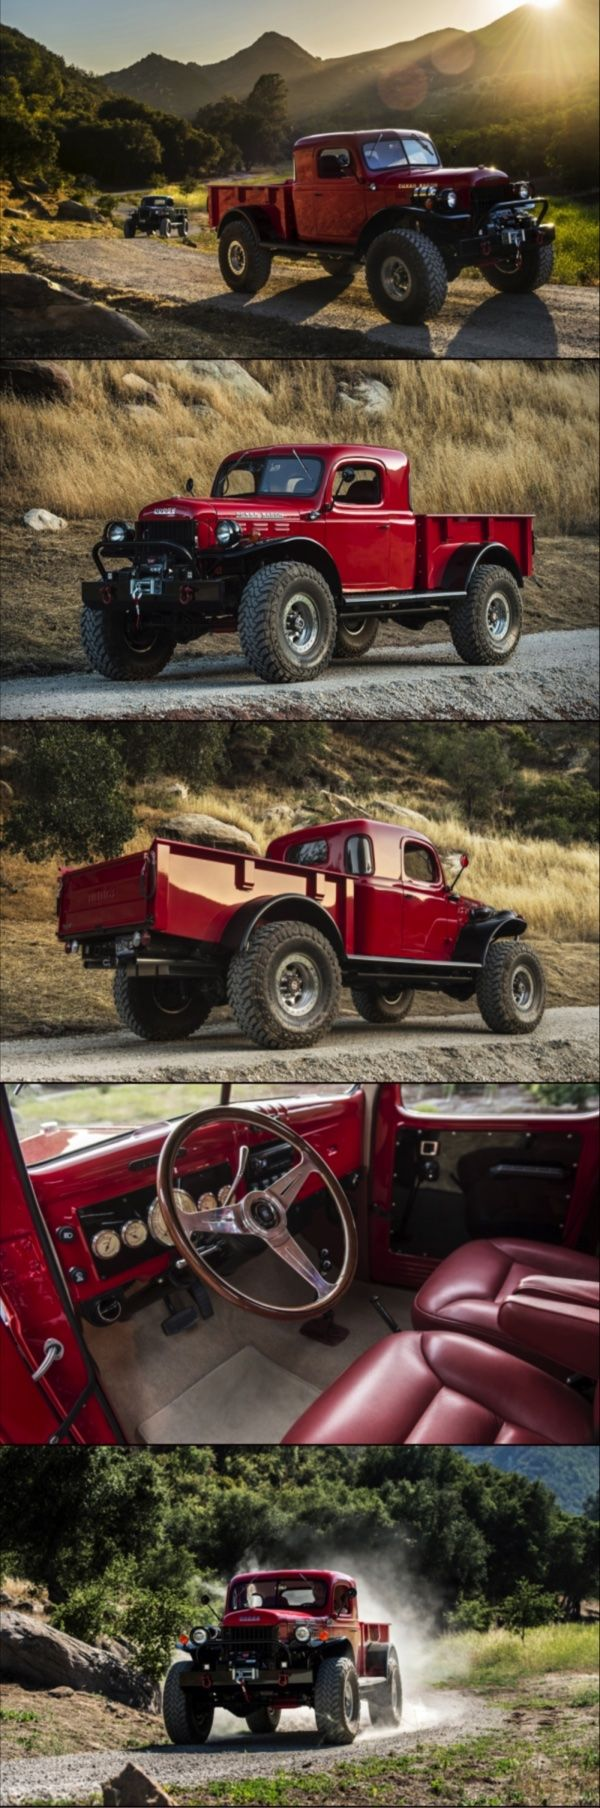 Dodge trucks in wwii - Best 25 Dodge Ram Power Wagon Ideas On Pinterest Dodge Power Wagon Farm Trucks And Classic Trucks